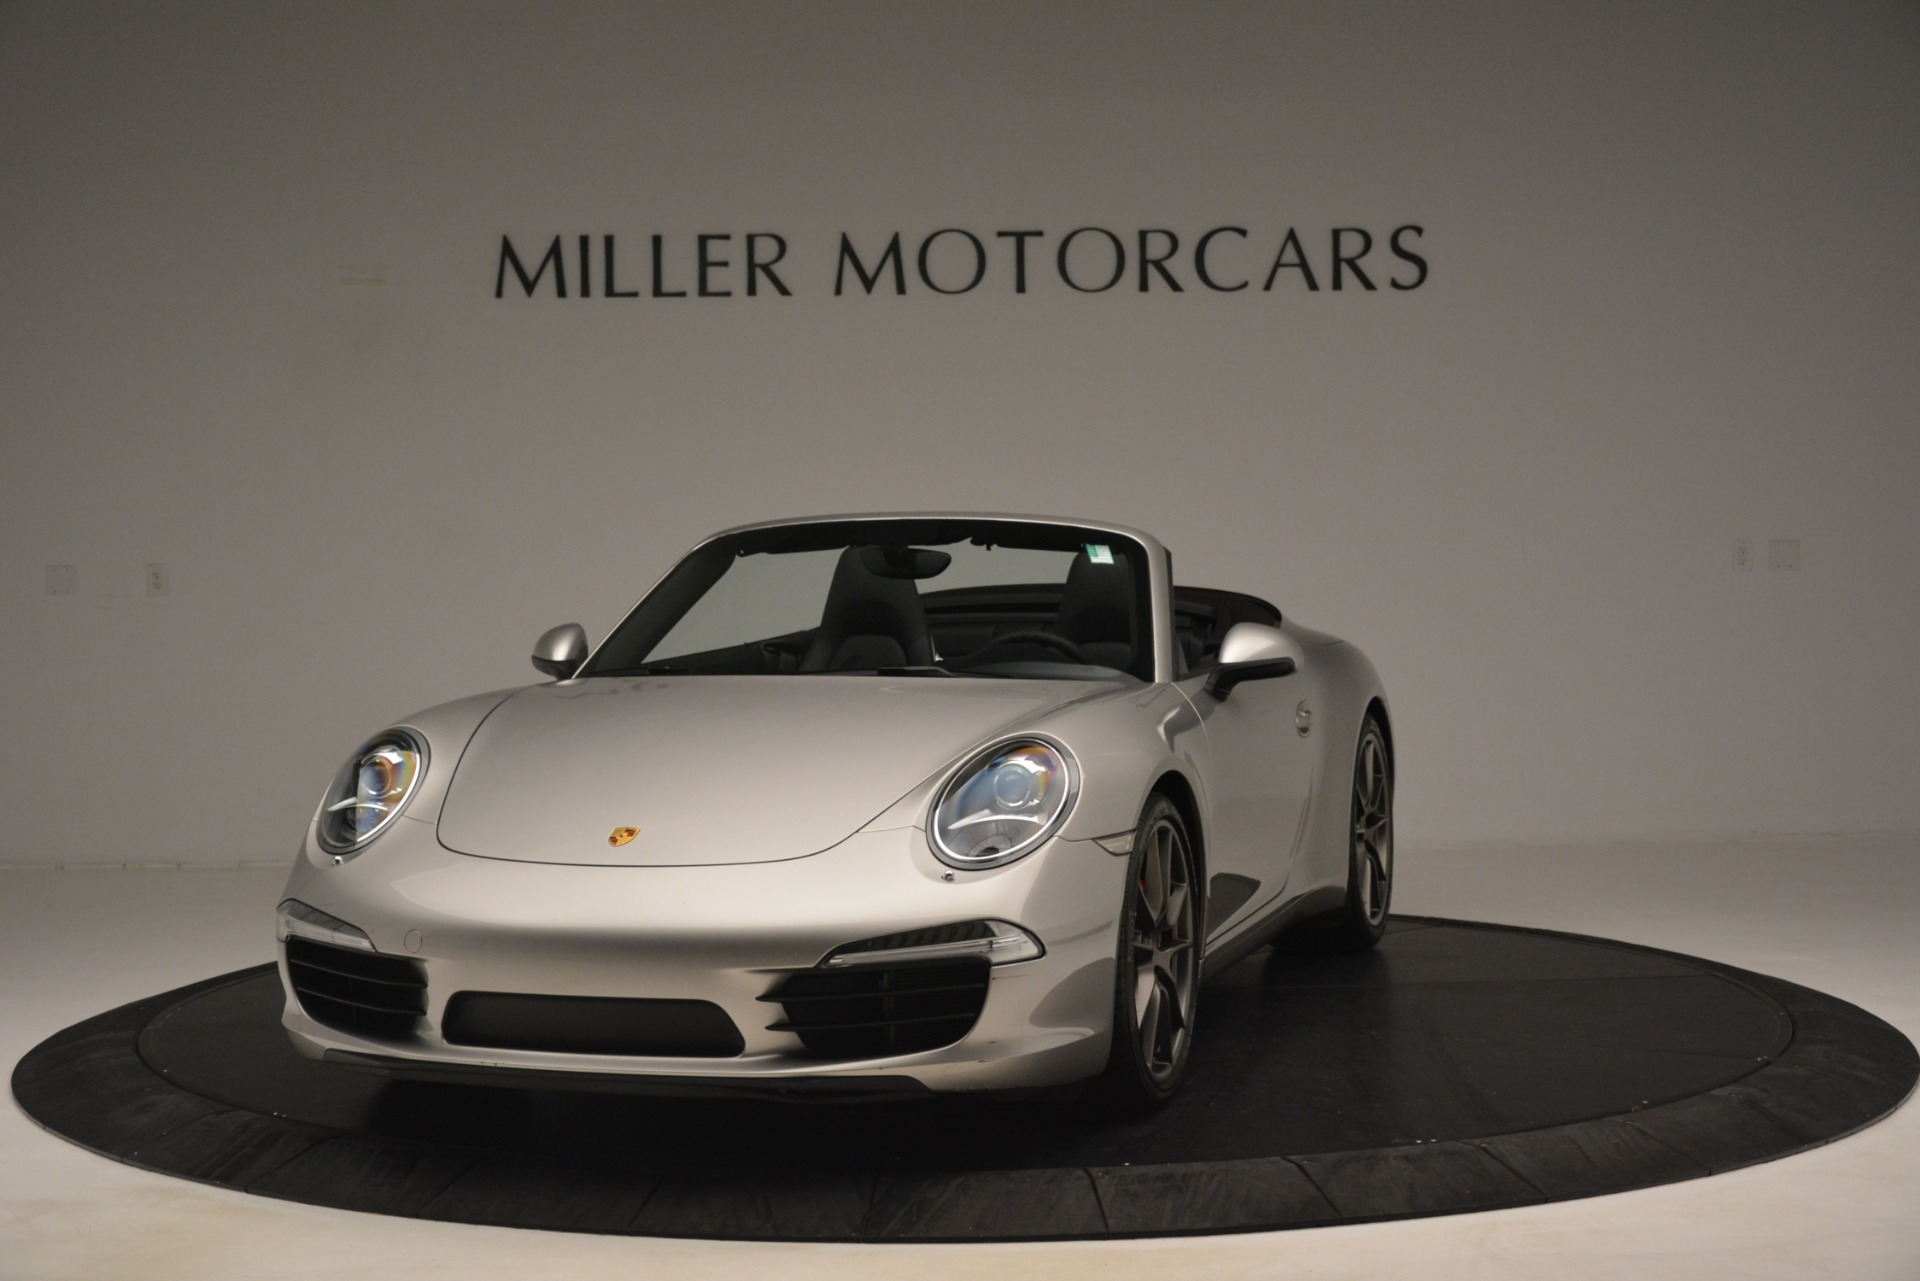 Used 2013 Porsche 911 Carrera S for sale Sold at Pagani of Greenwich in Greenwich CT 06830 1